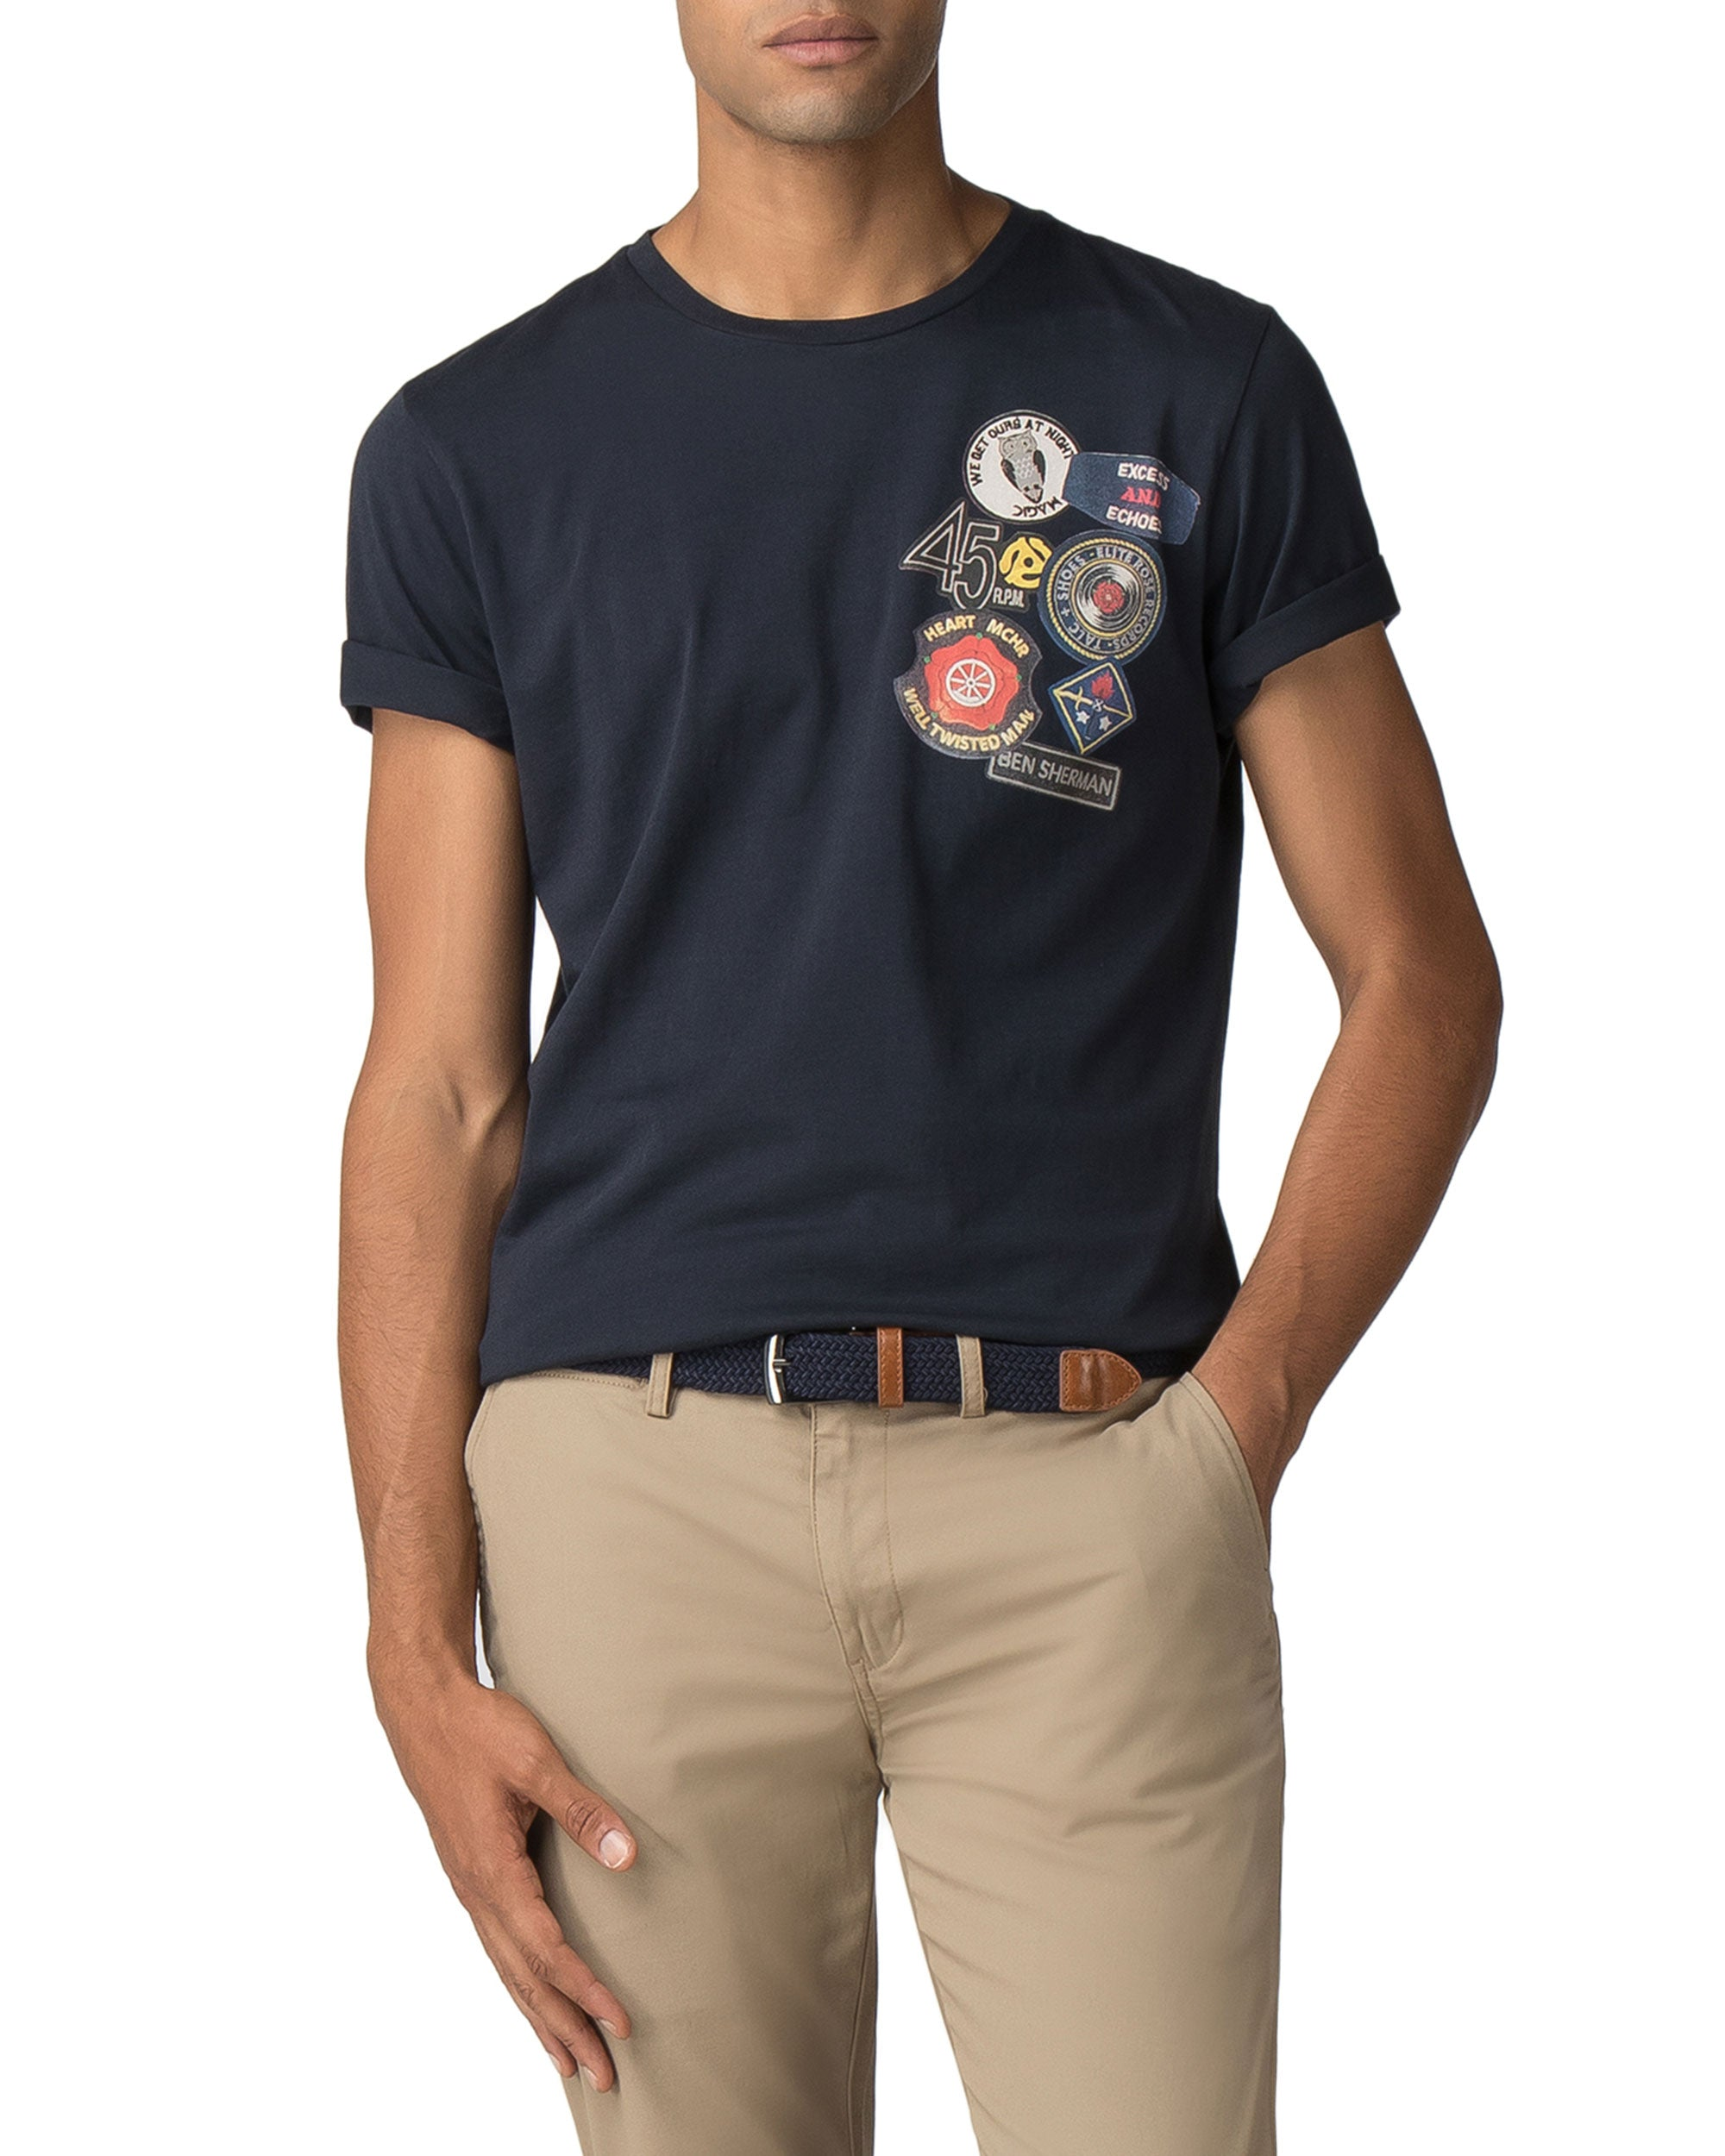 Soul Badges Graphic Tee - Midnight Navy